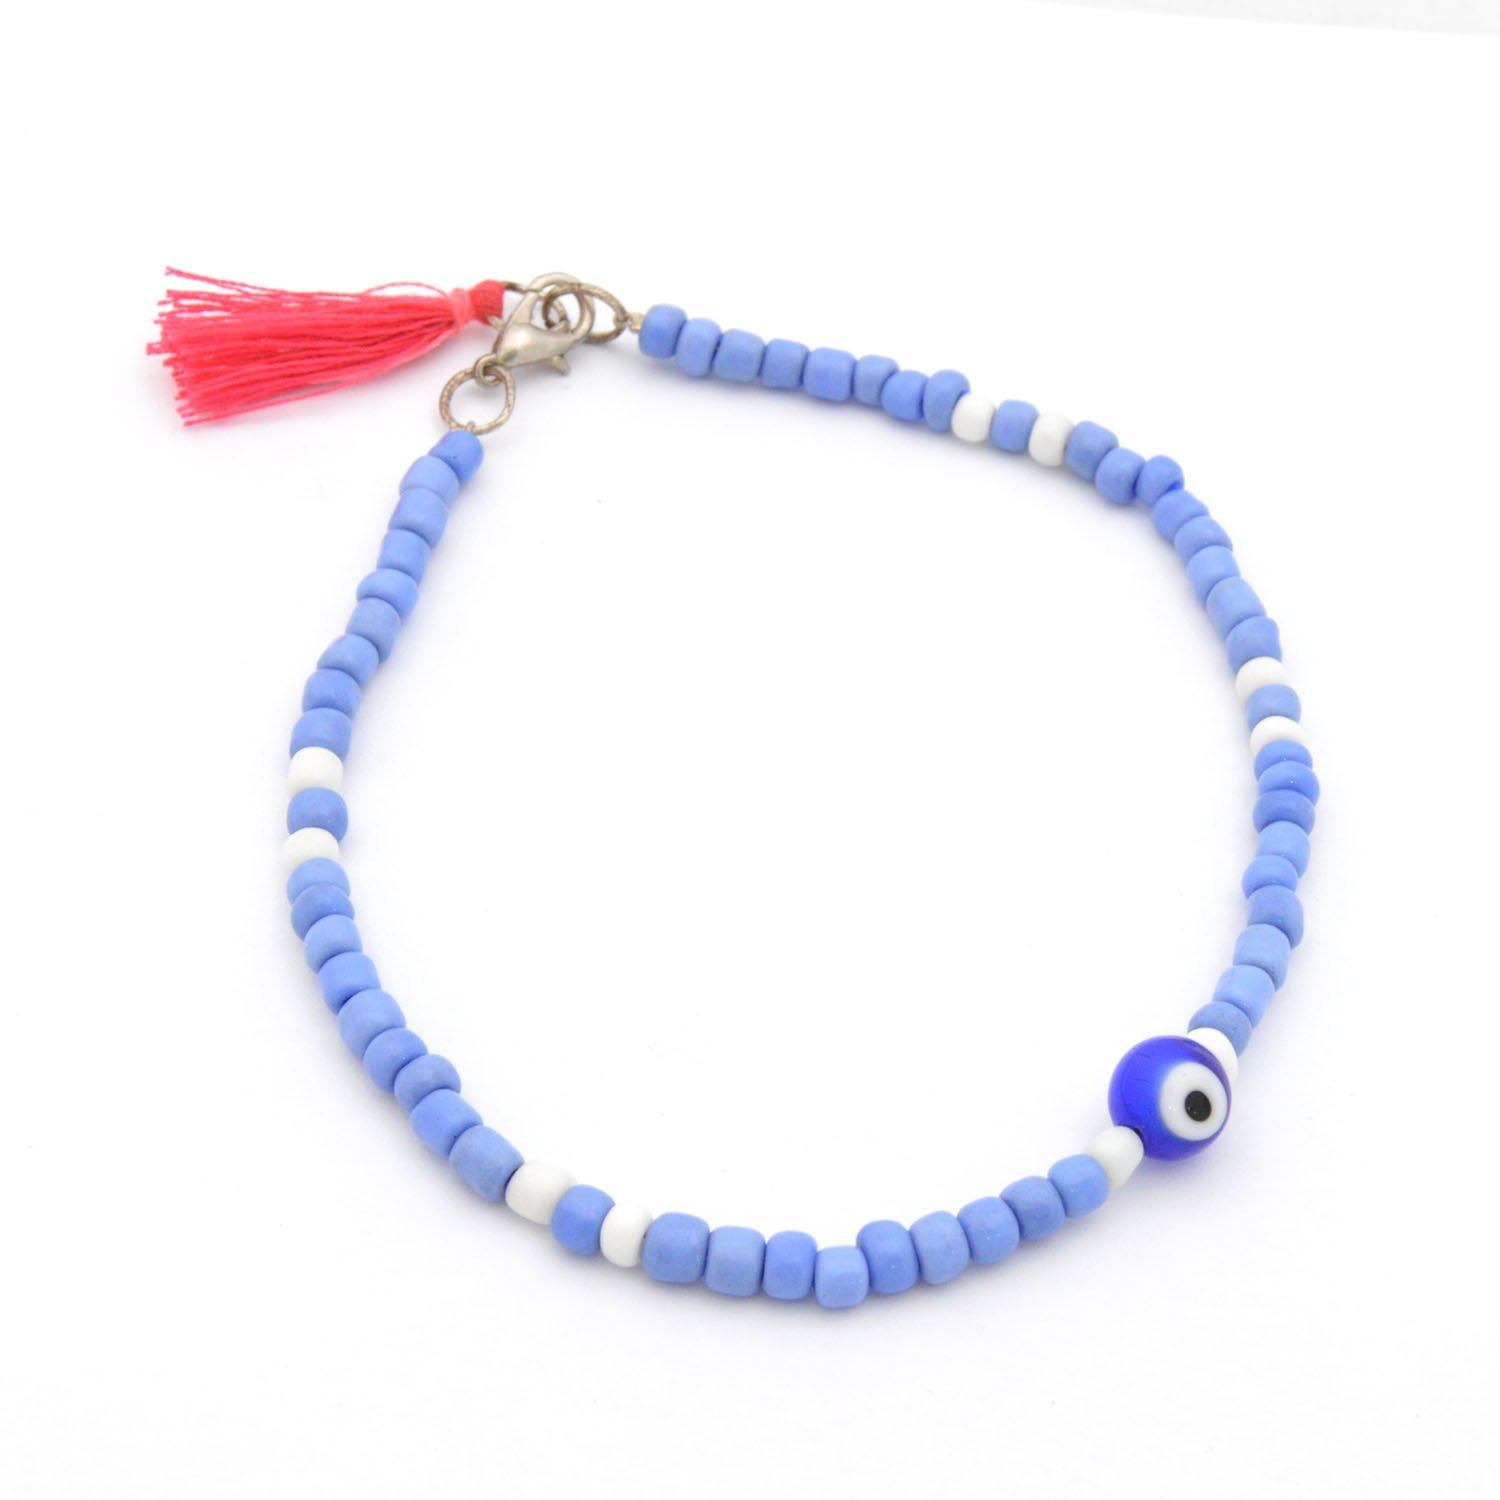 Fashionable colorful anklet